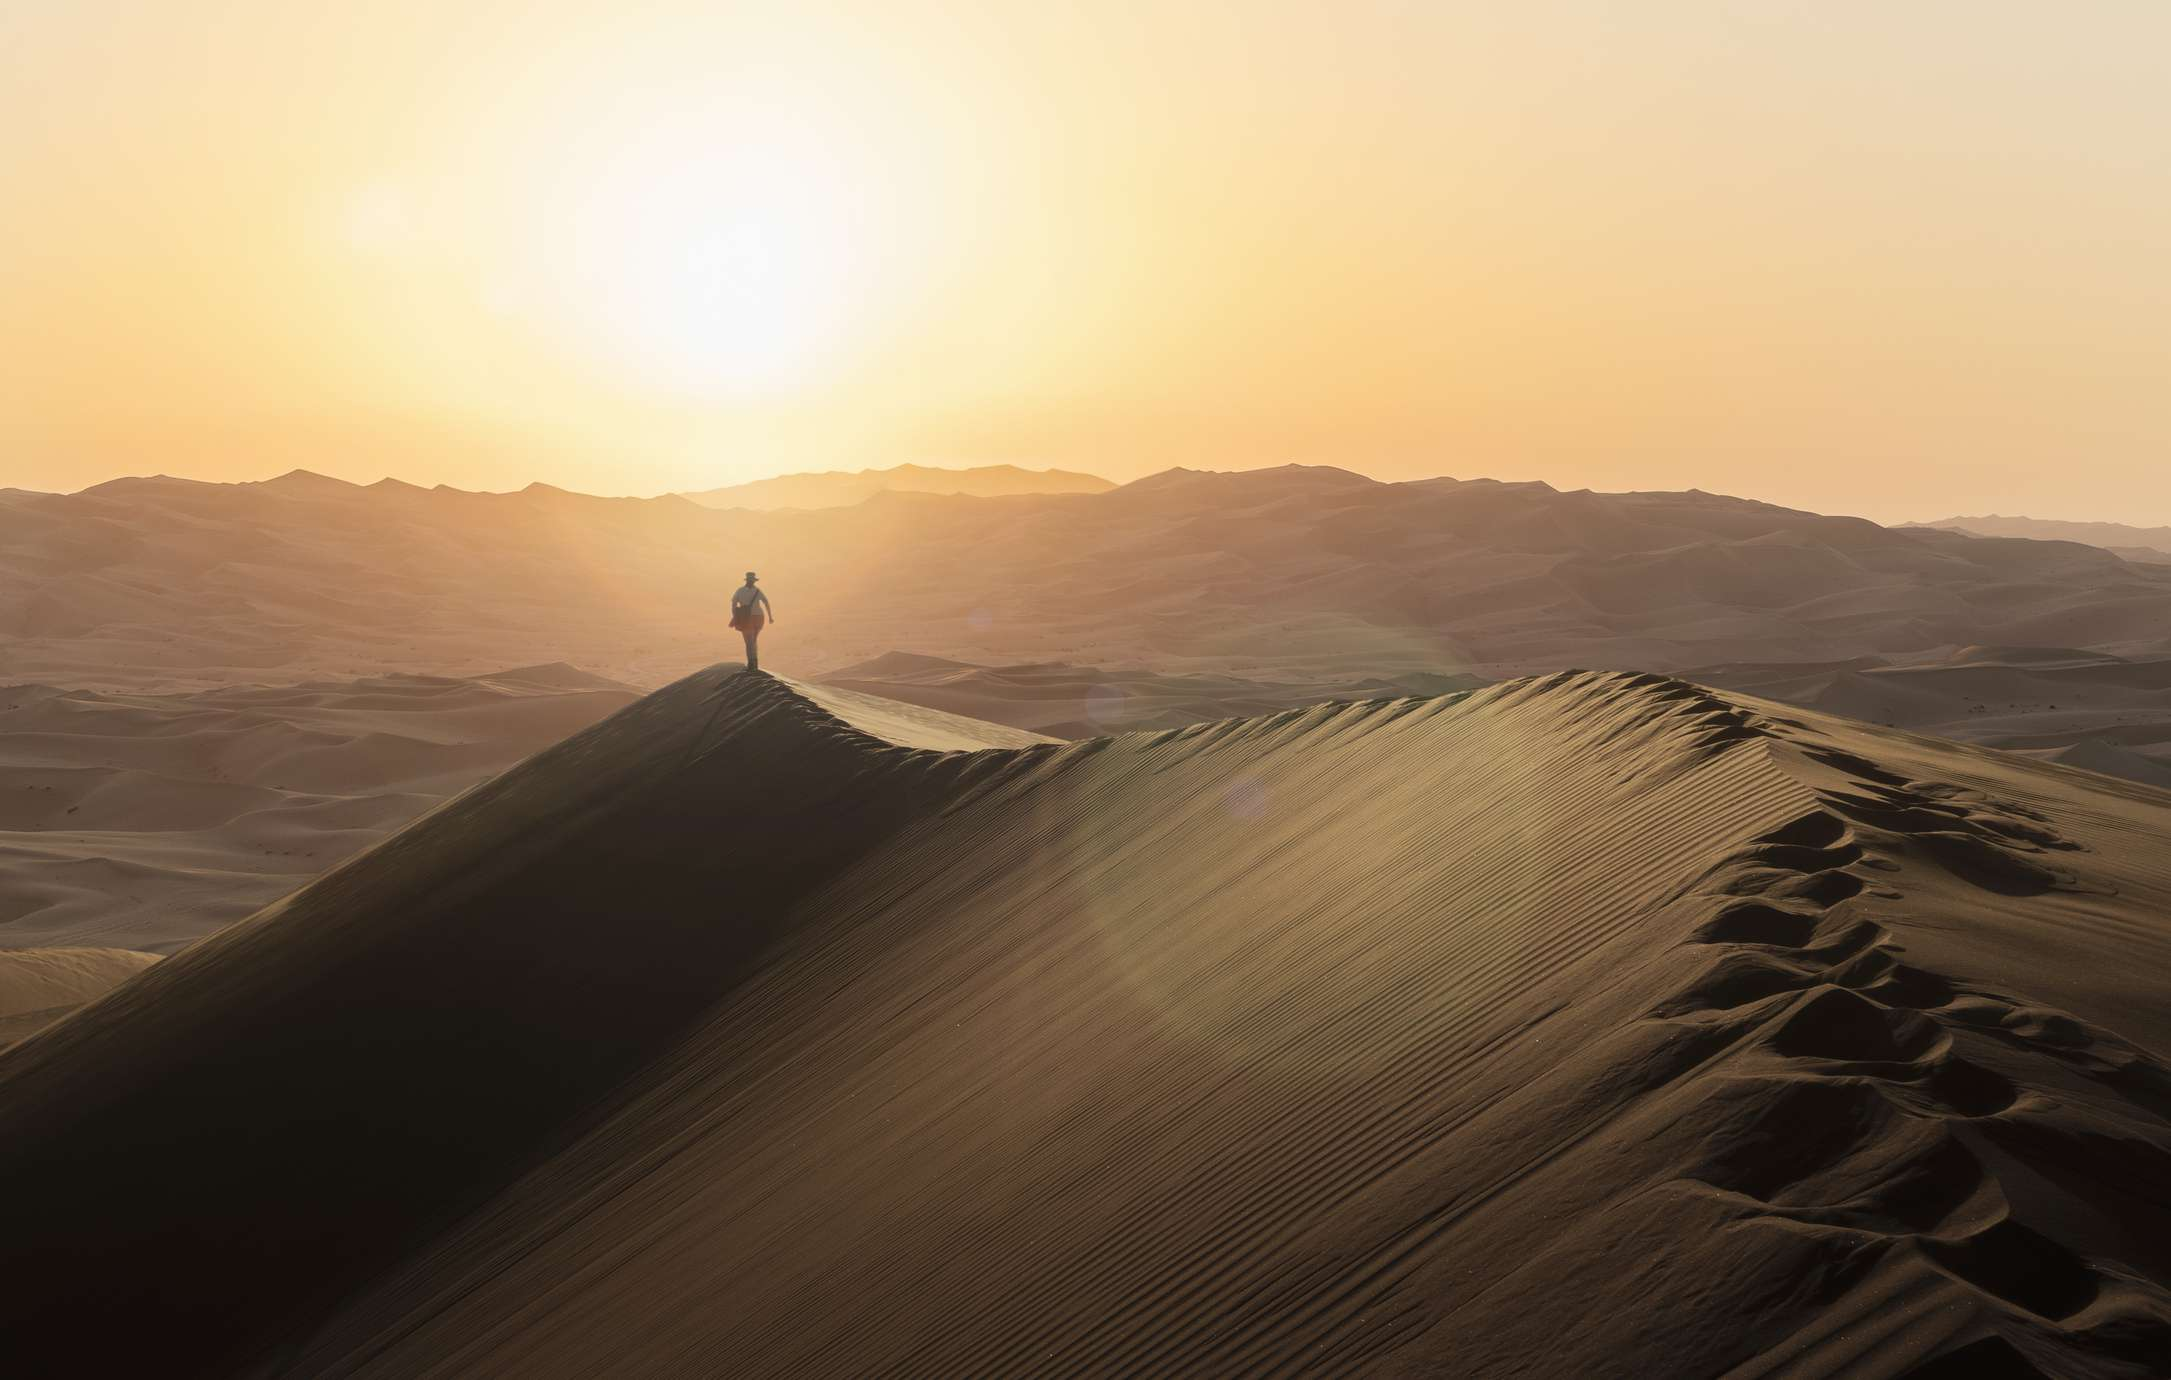 One person walking along the top of a sand dune photographed at sunset